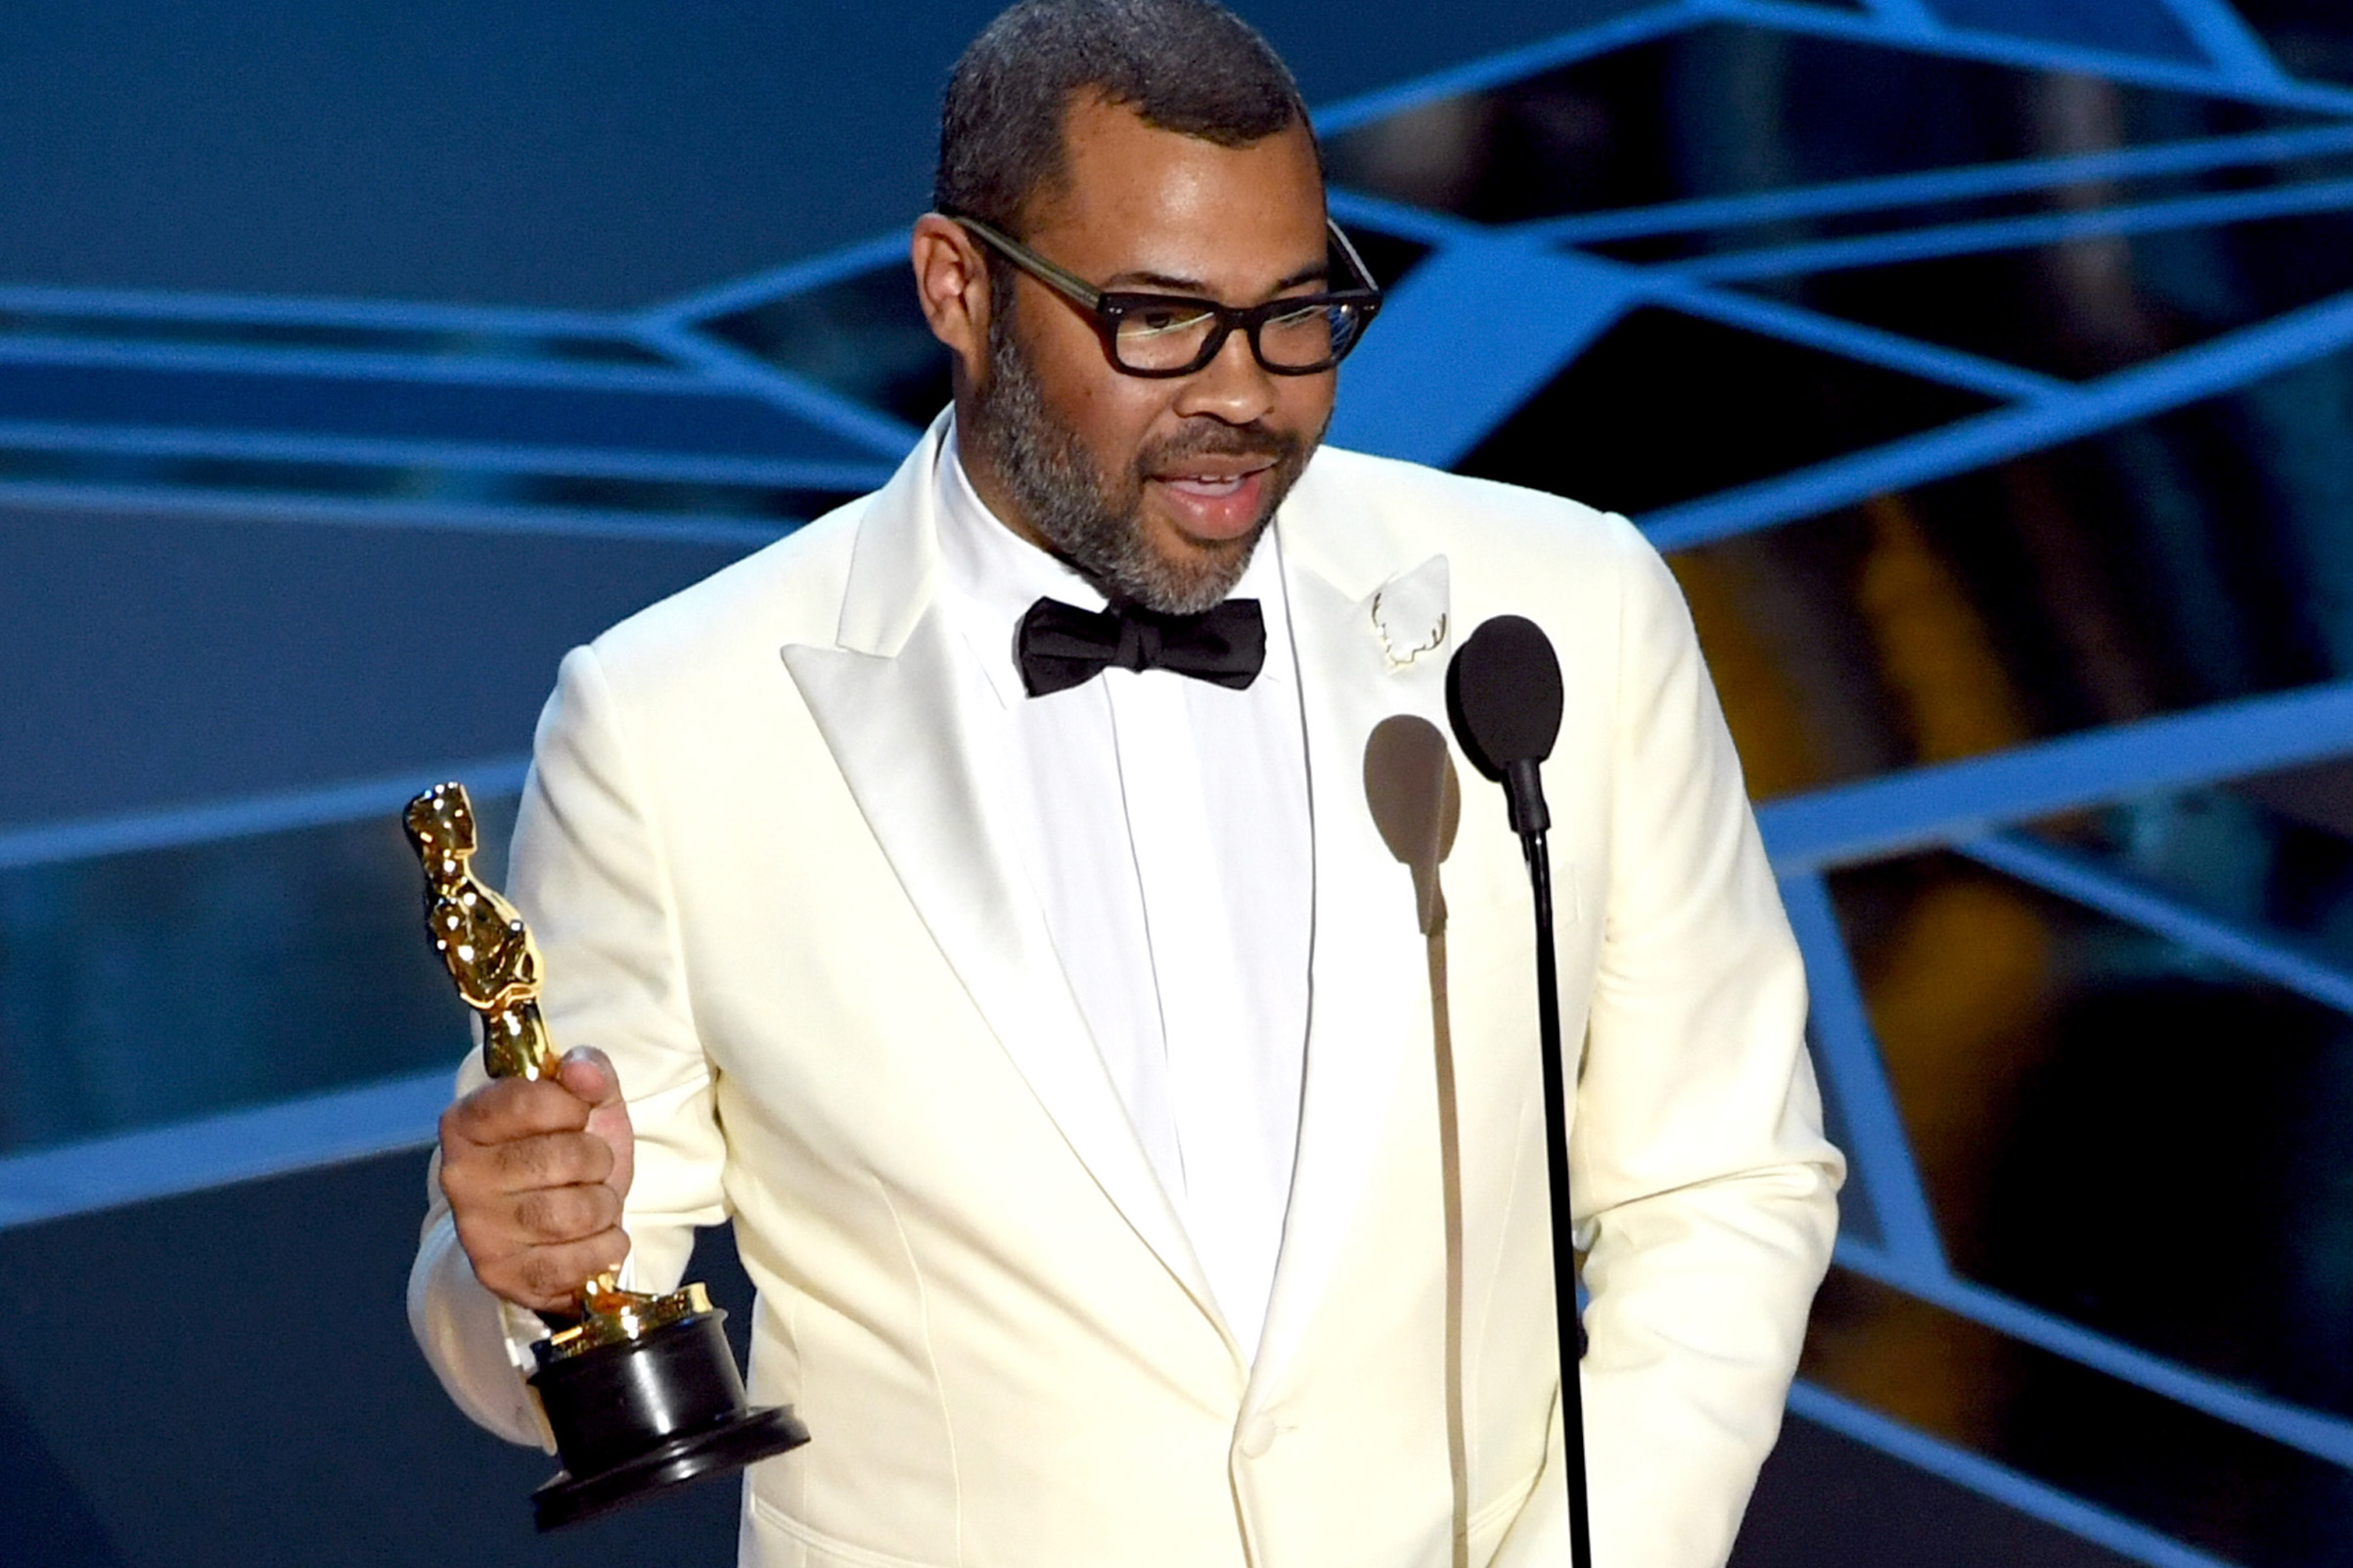 Writer/director Jordan Peele accepts Best Original Screenplay for 'Get Out' onstage during the 90th Annual Academy Awards at the Dolby Theatre at Hollywood & Highland Center on March 4, 2018 in Hollywood.